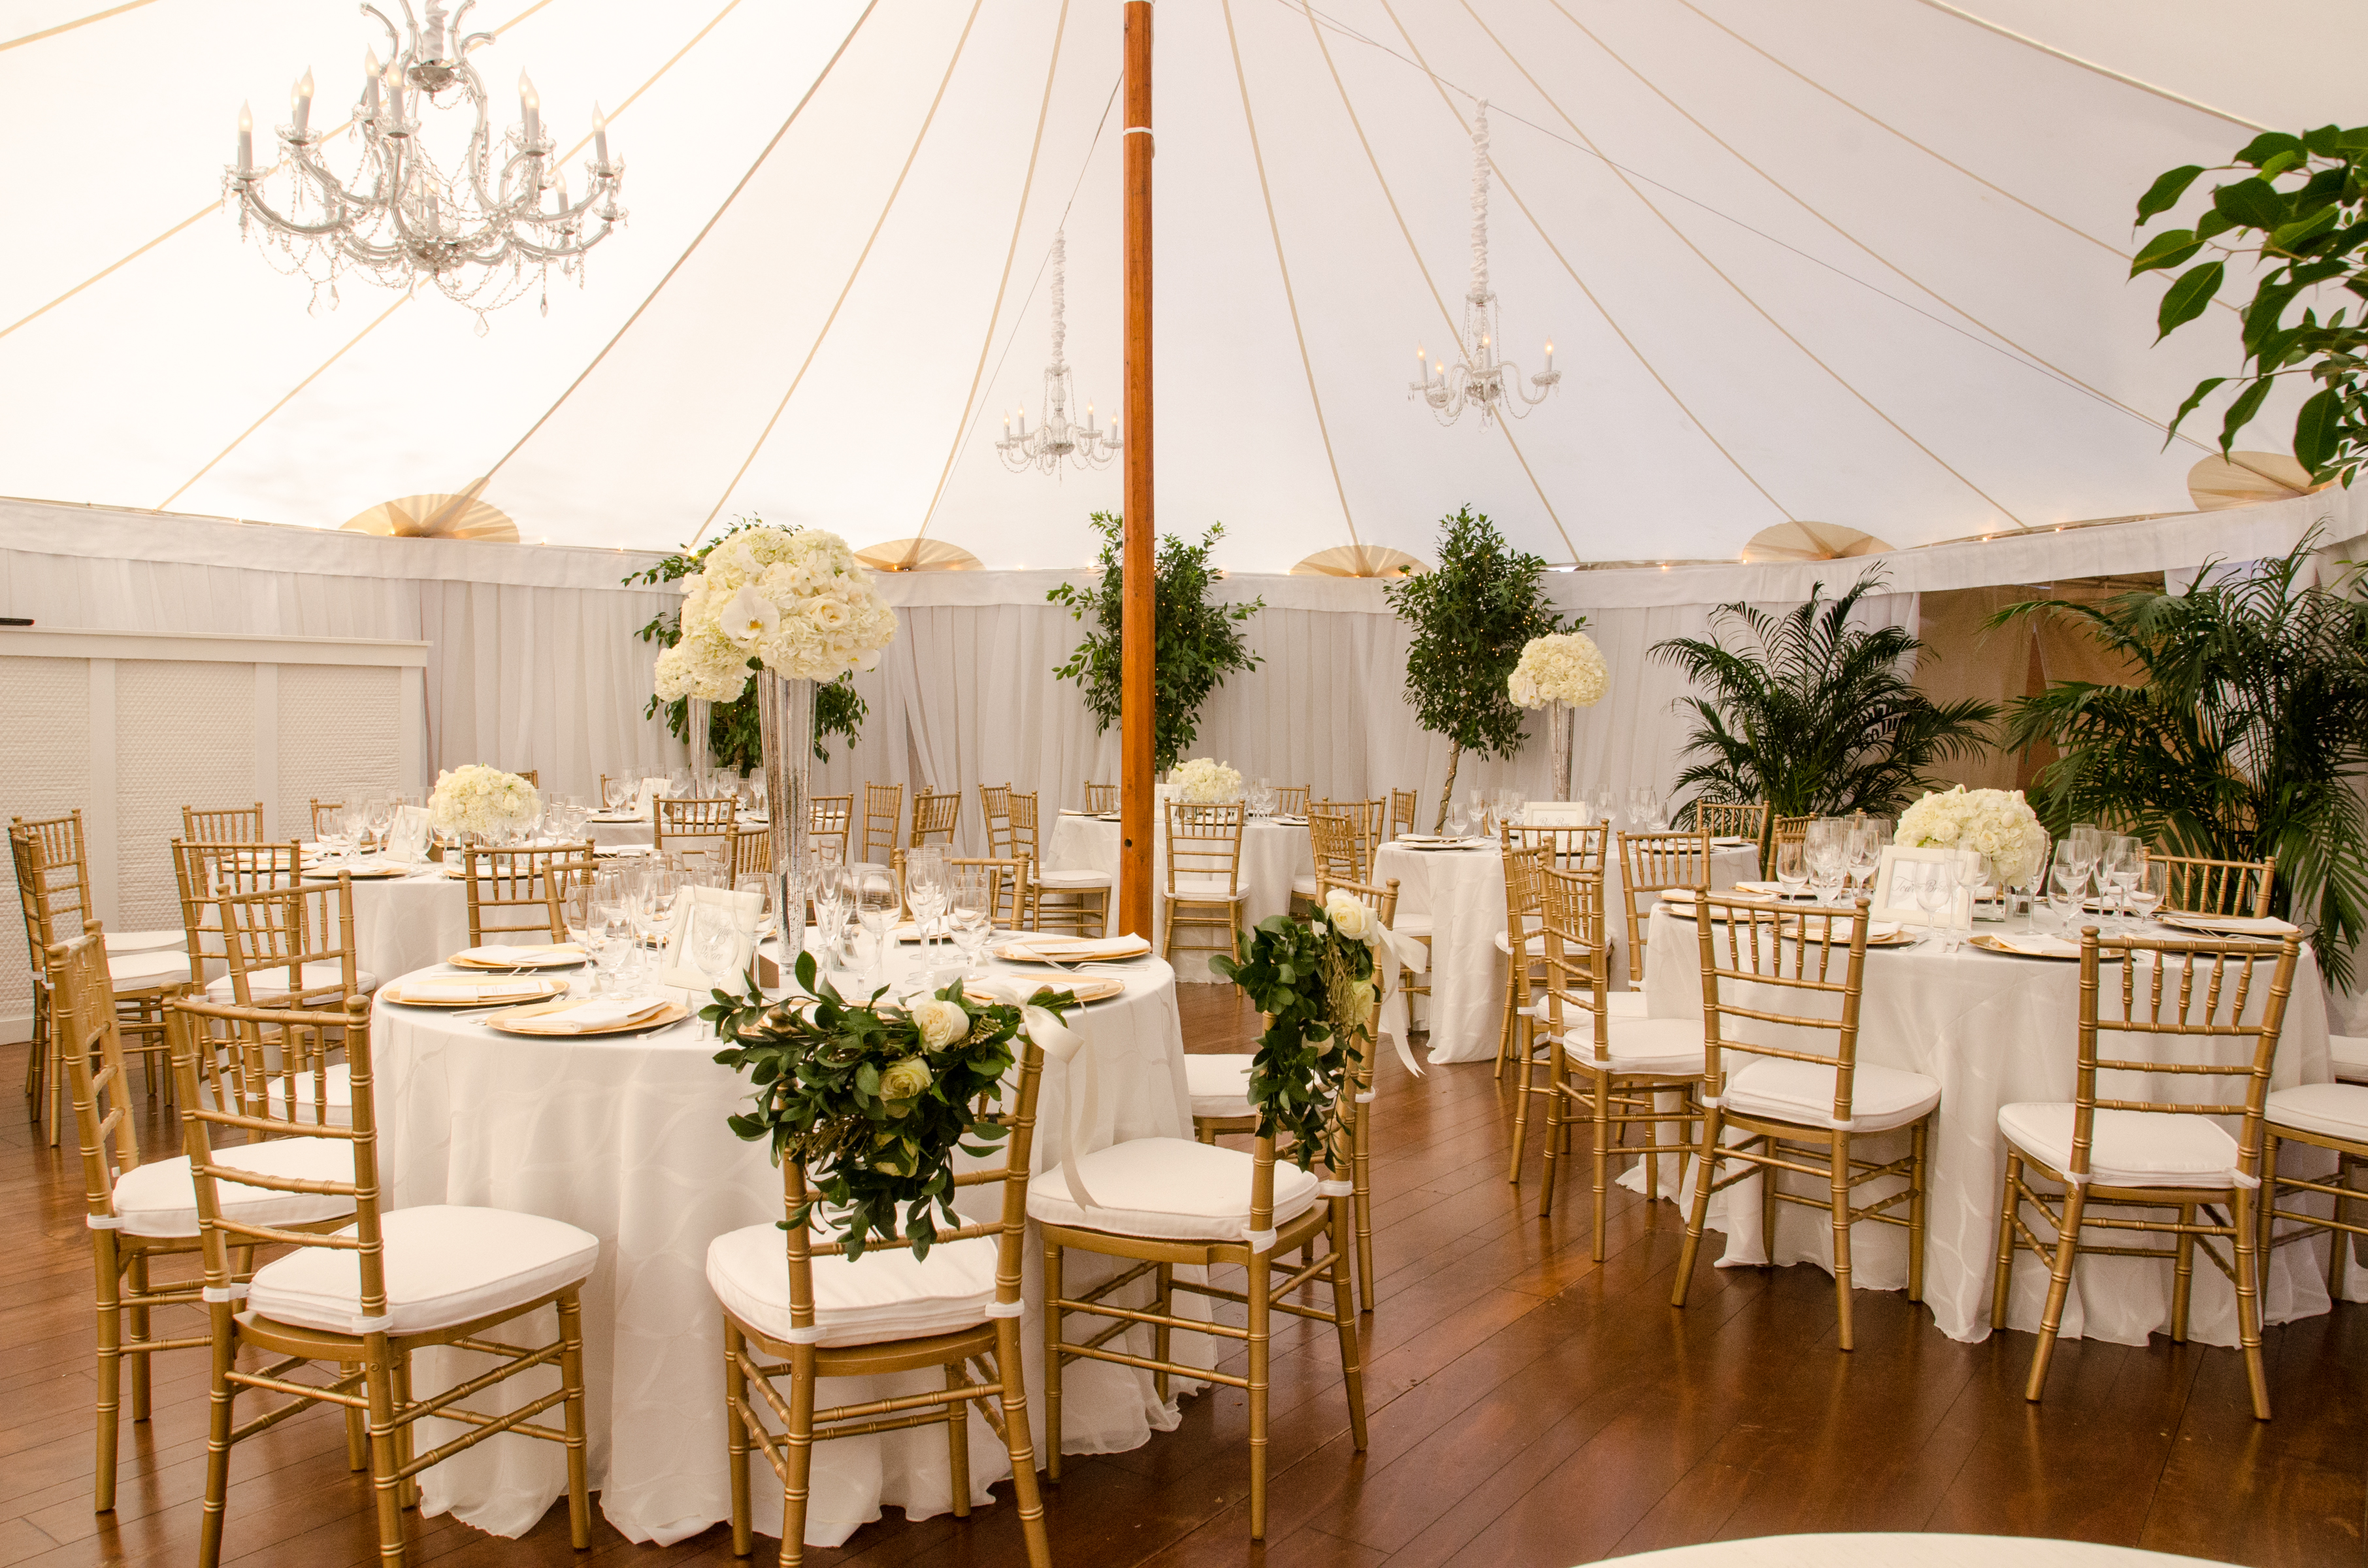 white tented wedding decor